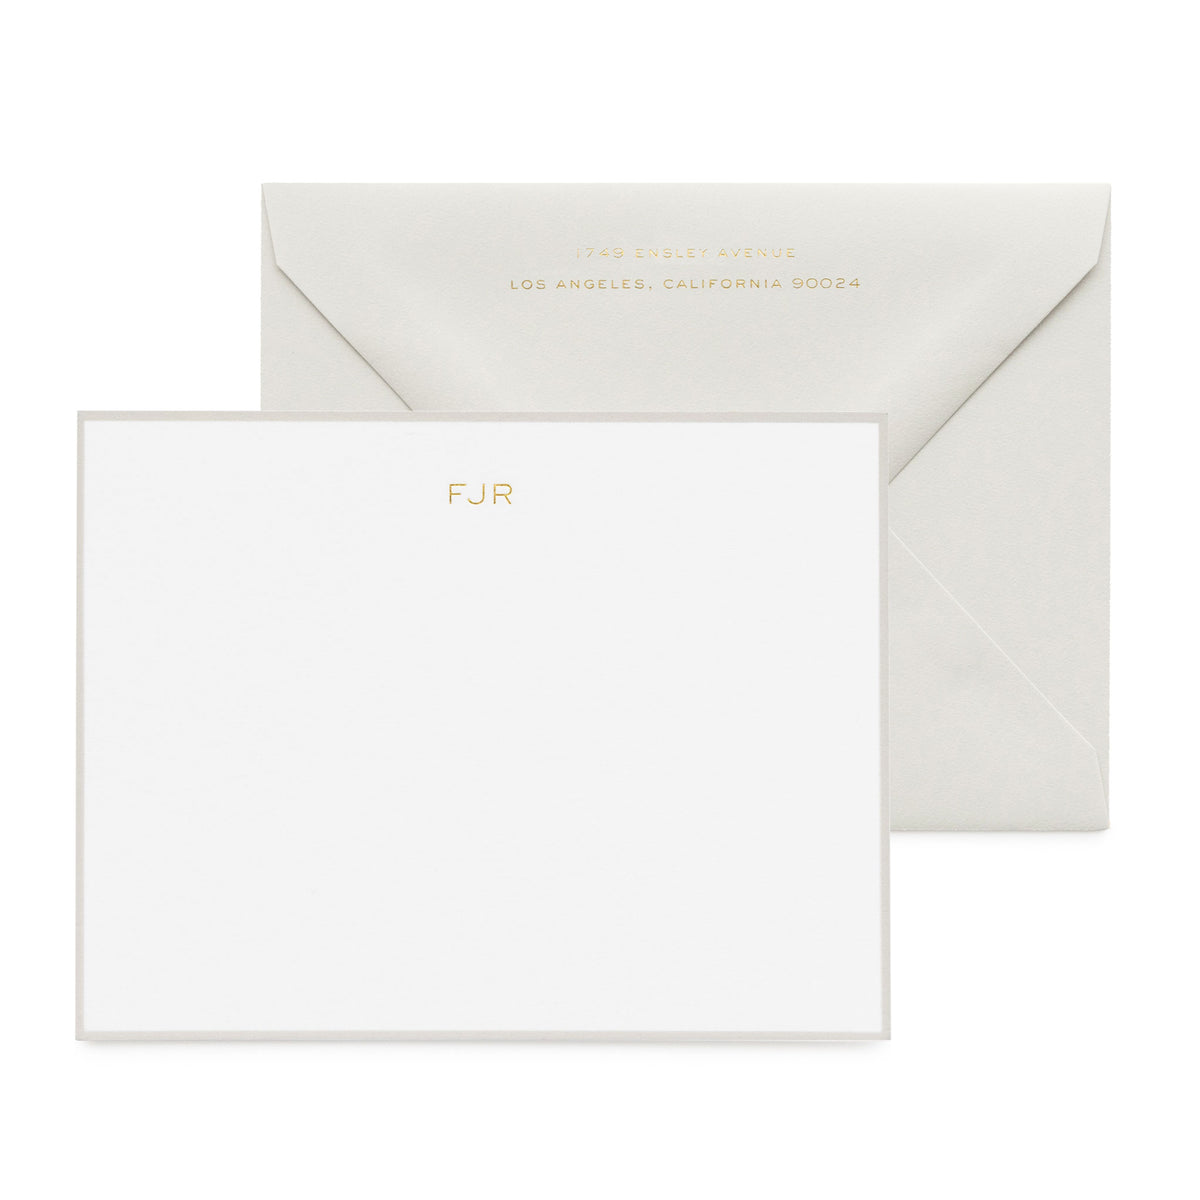 Grey personalized stationery set with gold foil initials